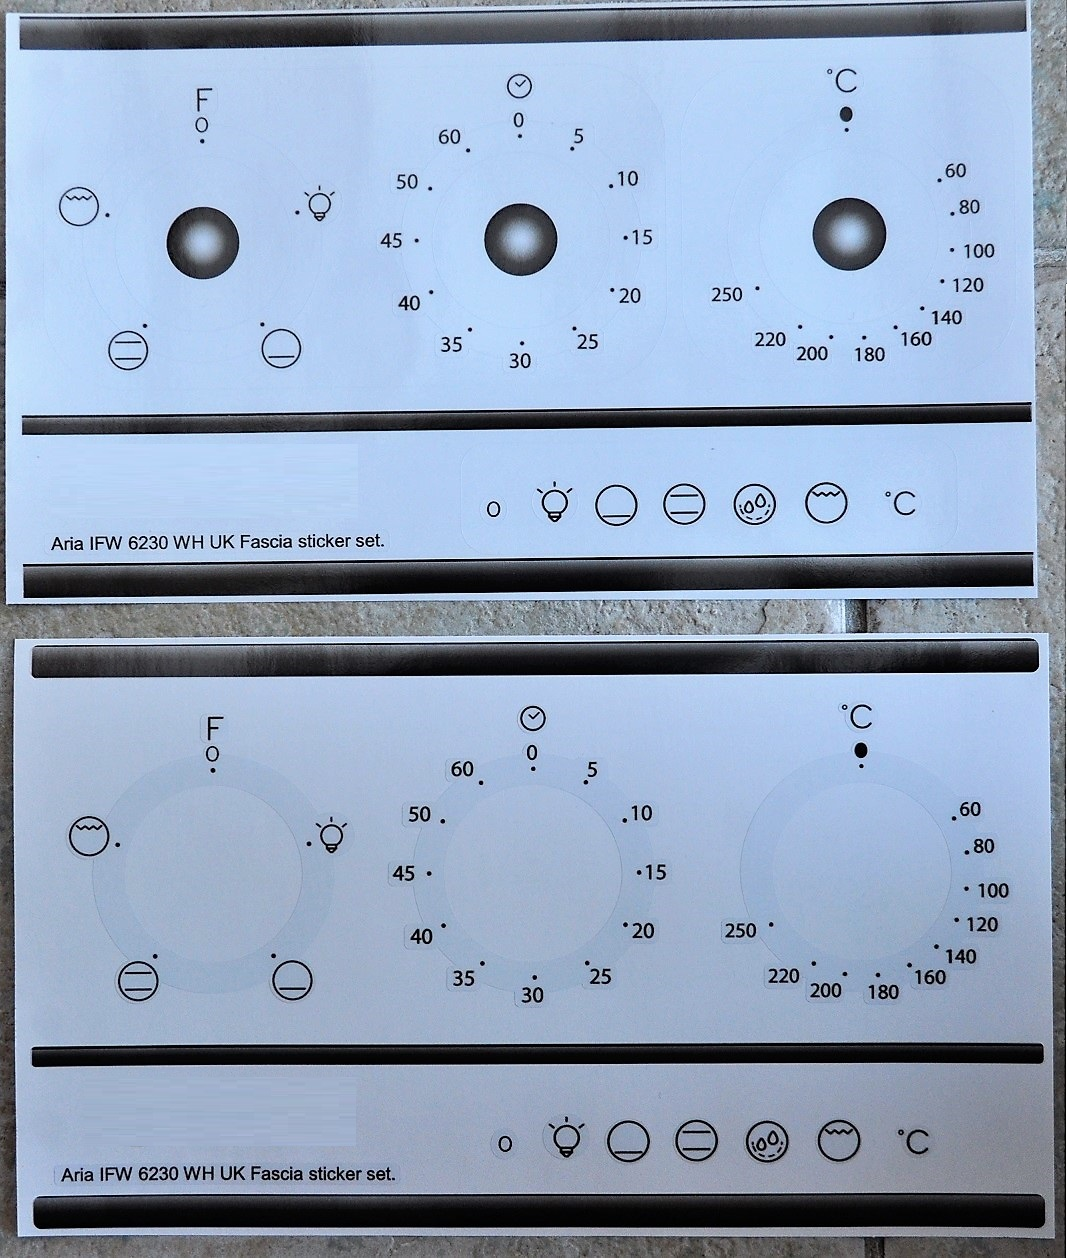 Indesit Aria IFW 6230 WH UK compatible fascia sticker set.